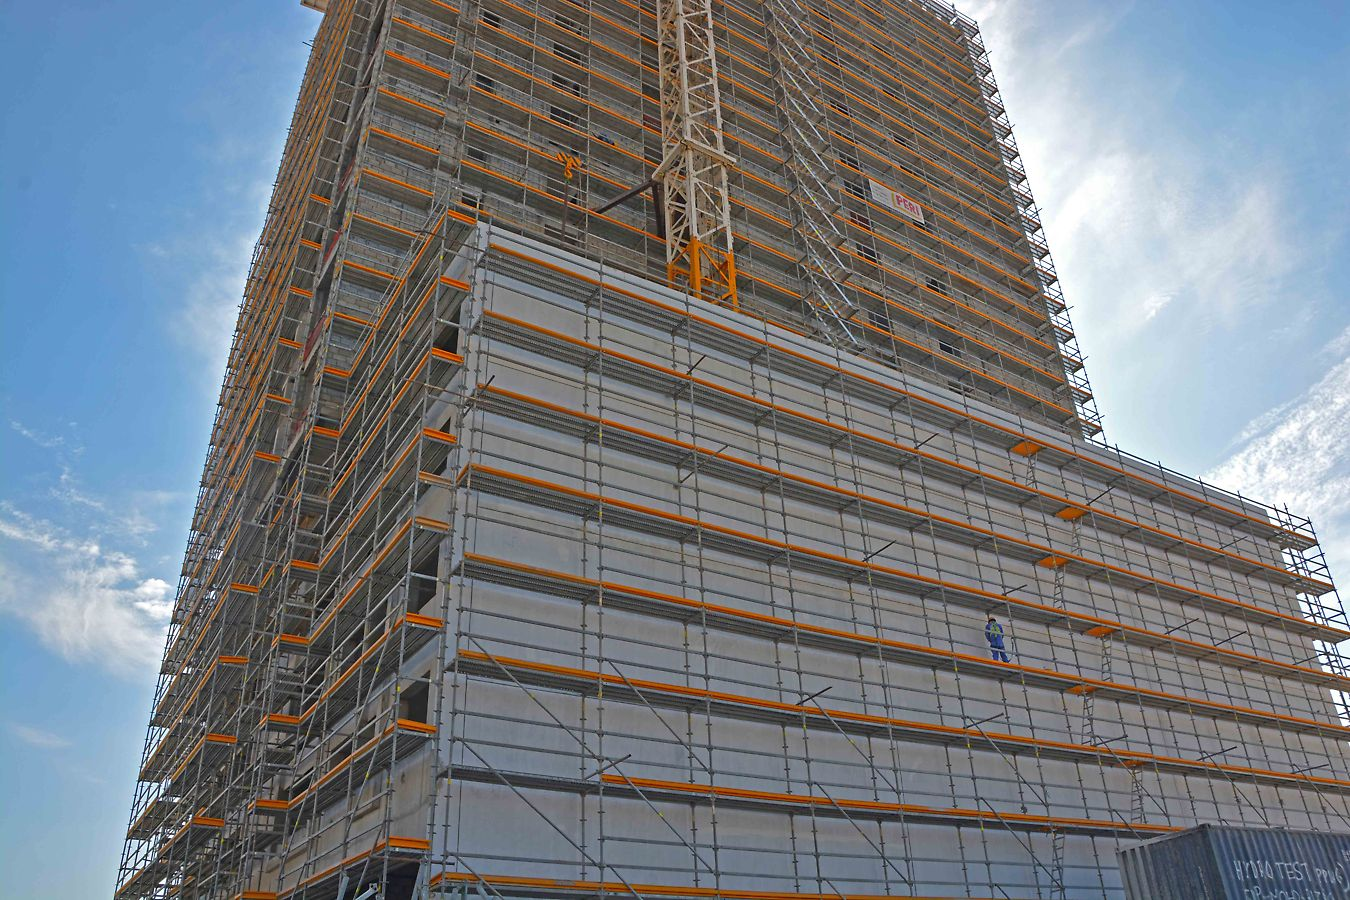 PERI Façade scaffold for this project